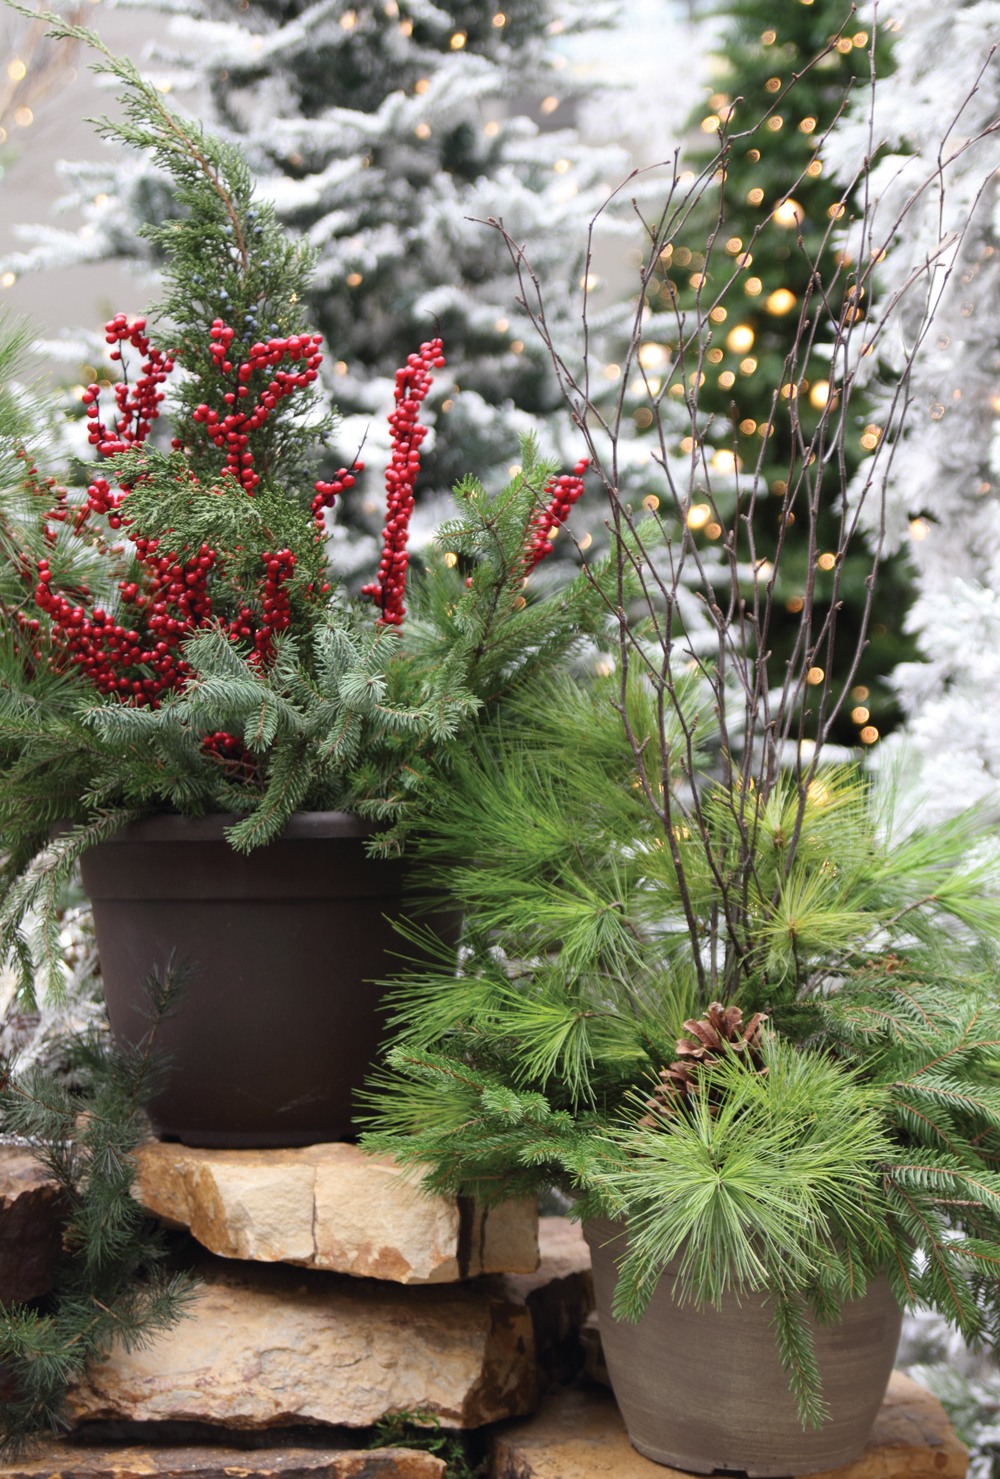 Outdoor Holiday Planters, available at  Jeffrey Alans , 4 stores in Illinois & Indiana, selection may vary by location